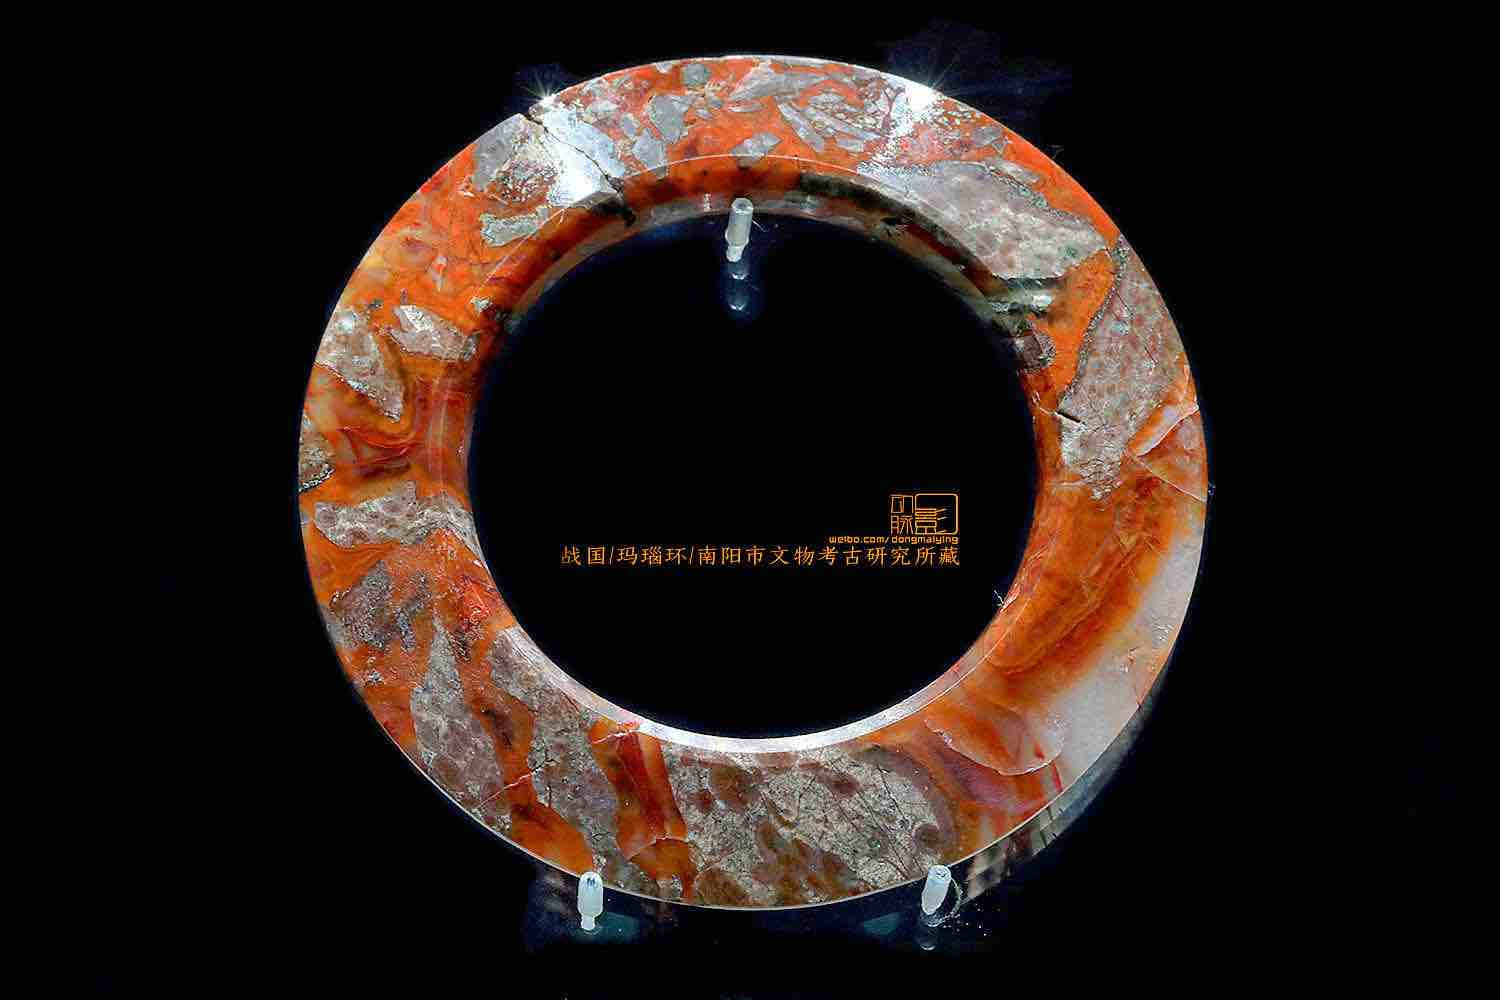 Agate Artifact (Huan) of the Warring States Period — Nanyang Antique Archaeology Institute